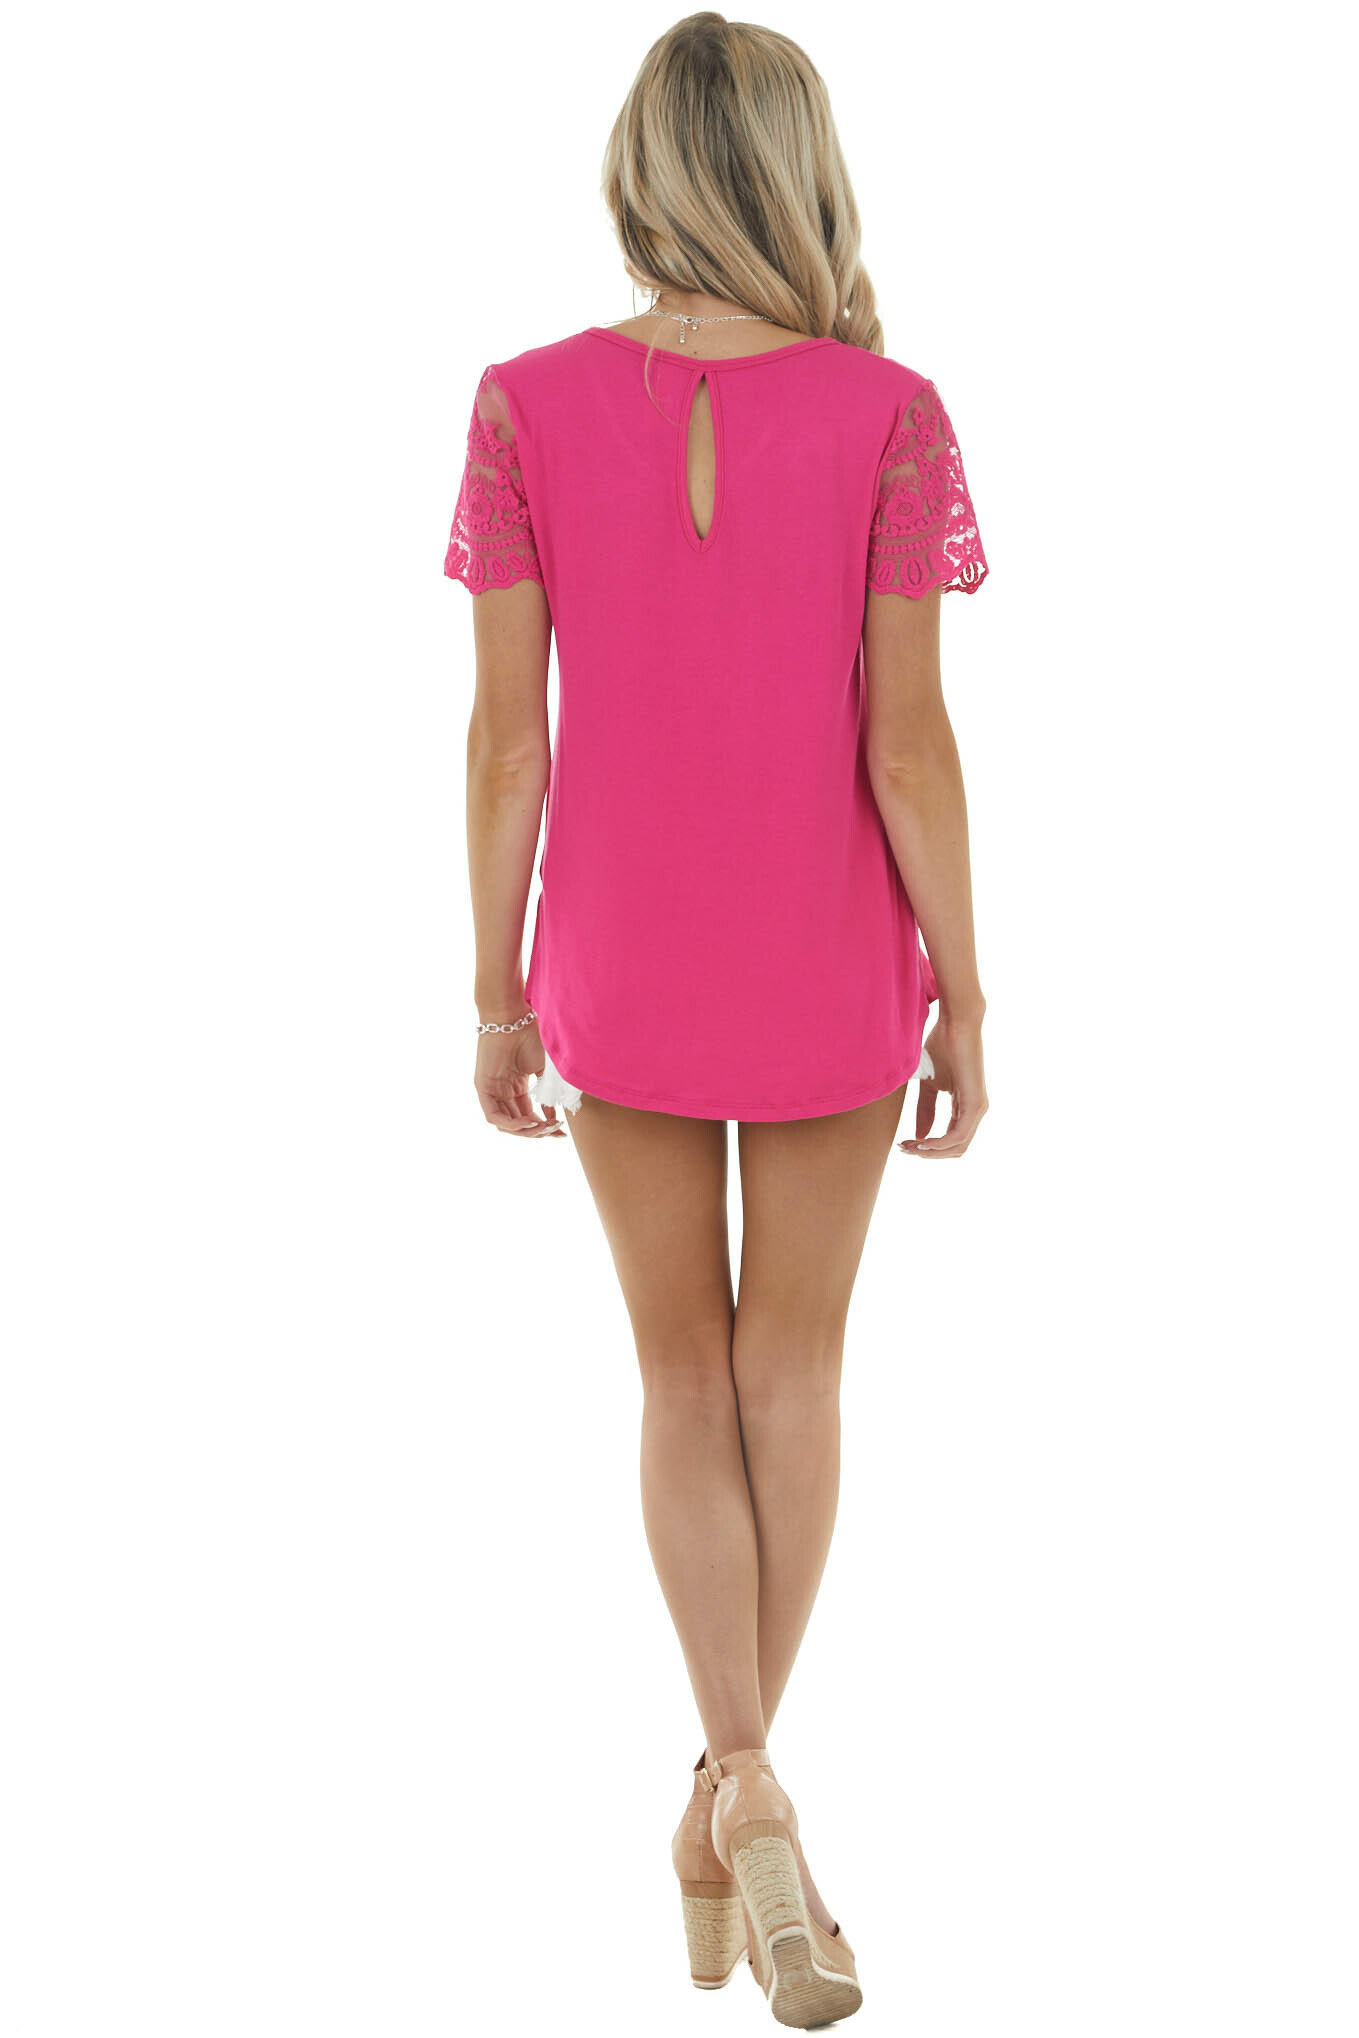 Magenta Keyhole Back Knit Top with Short Lace Sleeves